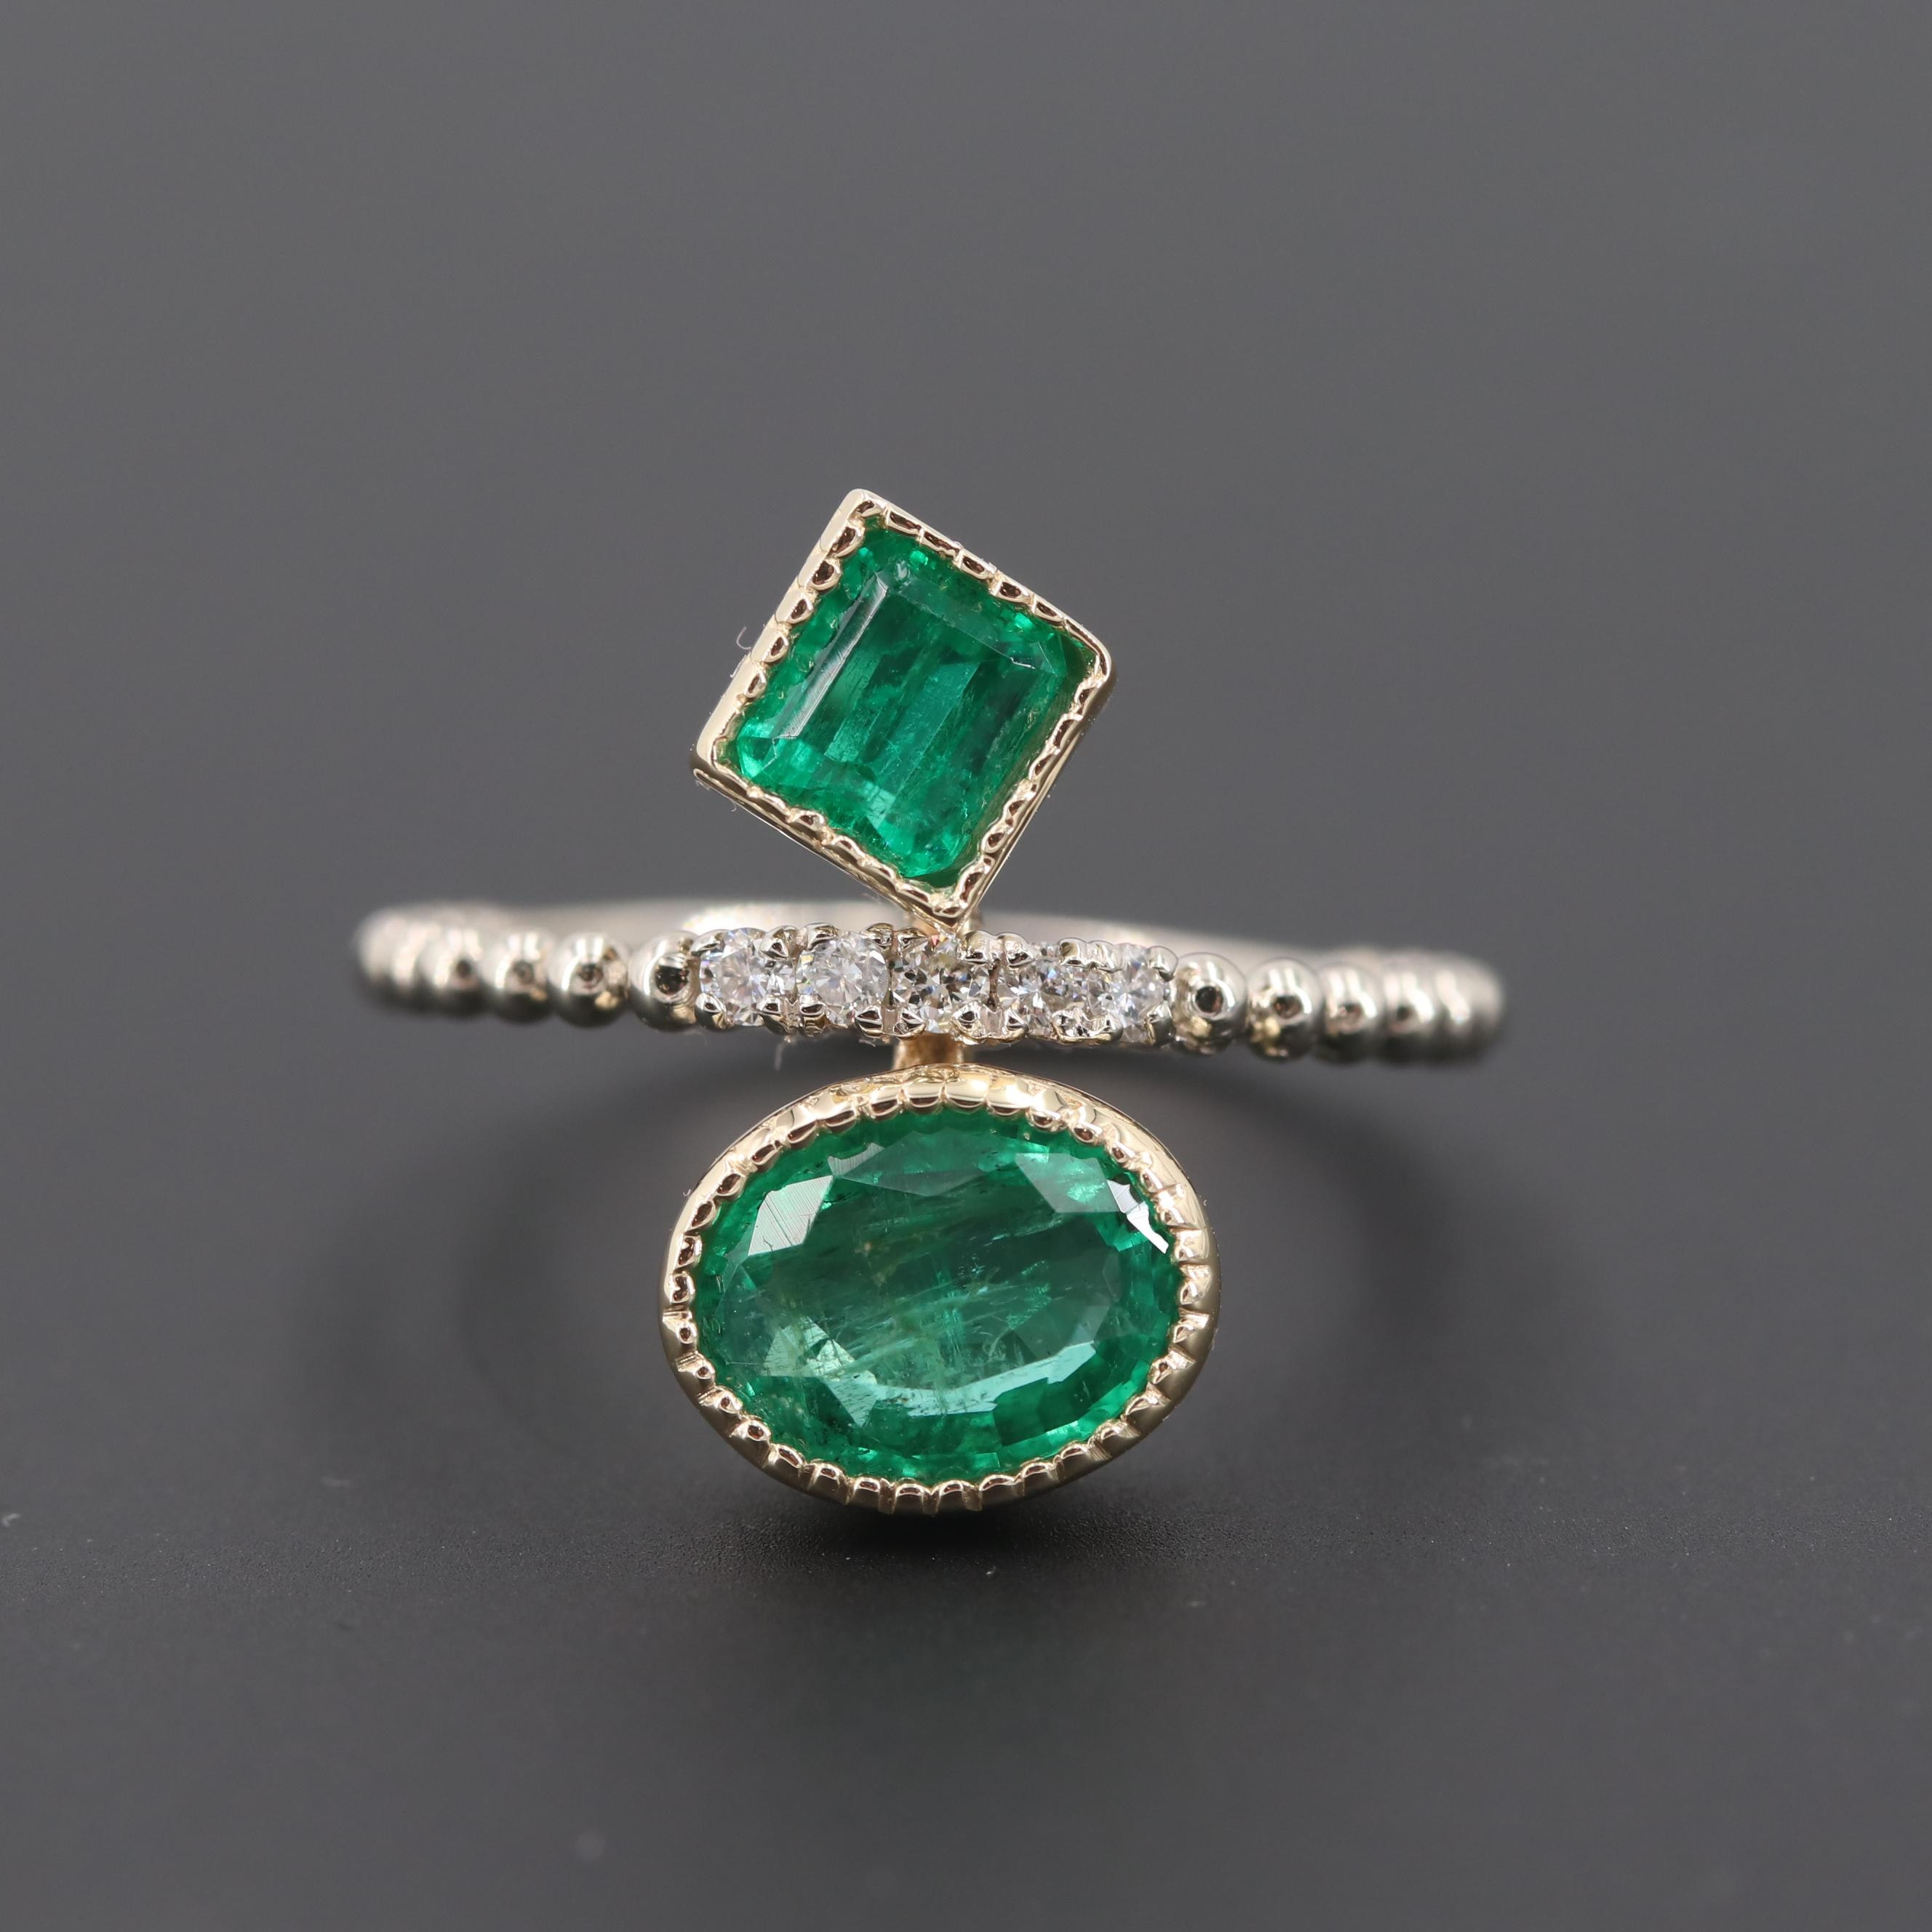 14K White and Yellow Gold Emerald and Diamond Ring